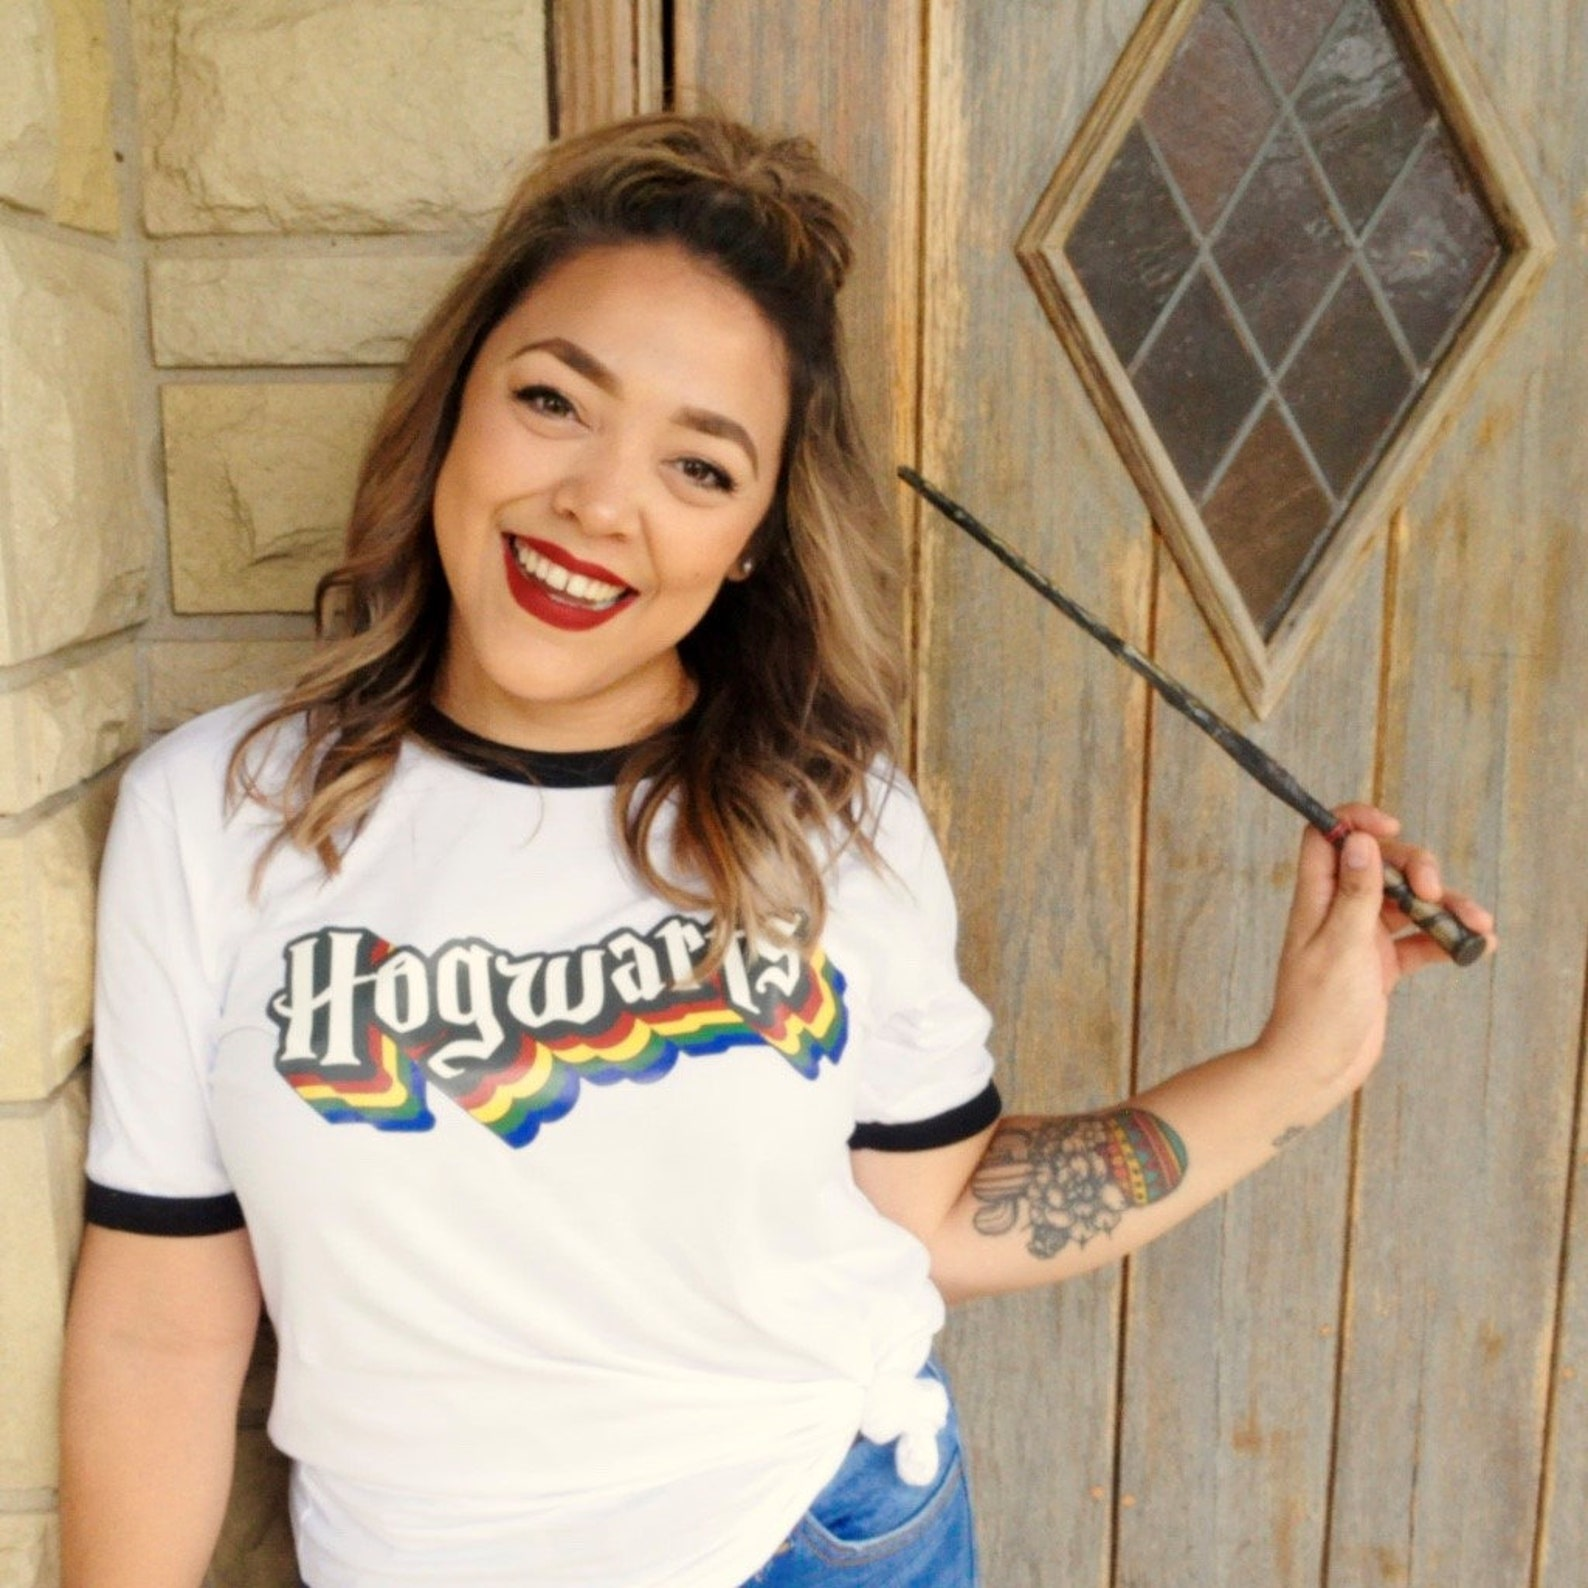 retro harry potter hogwarts tee on girl with wand.